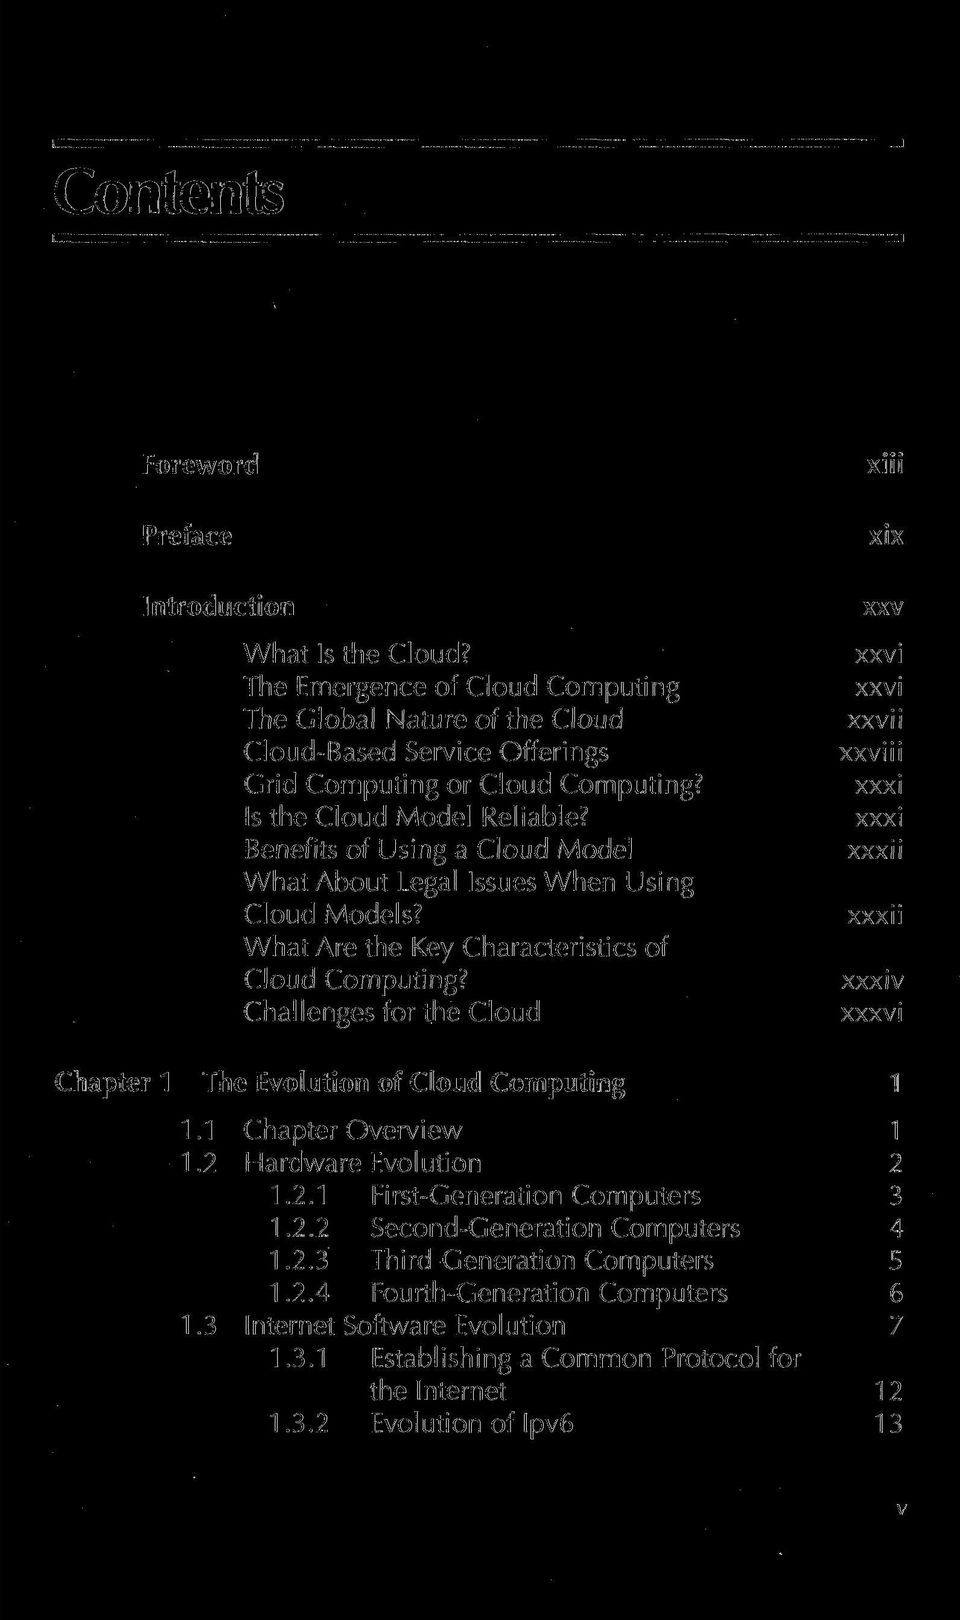 Challenges for the Cloud xiii xix xxv xxvi xxvi xxvii xxviii xxxi xxxi xxxii xxxii xxxiv xxxvi Chapter 1 The Evolution of Cloud Computing 1 1.1 Chapter Overview 1 1.2 Hardware Evolution 2 1.2.1 First-Generation Computers 3 1.